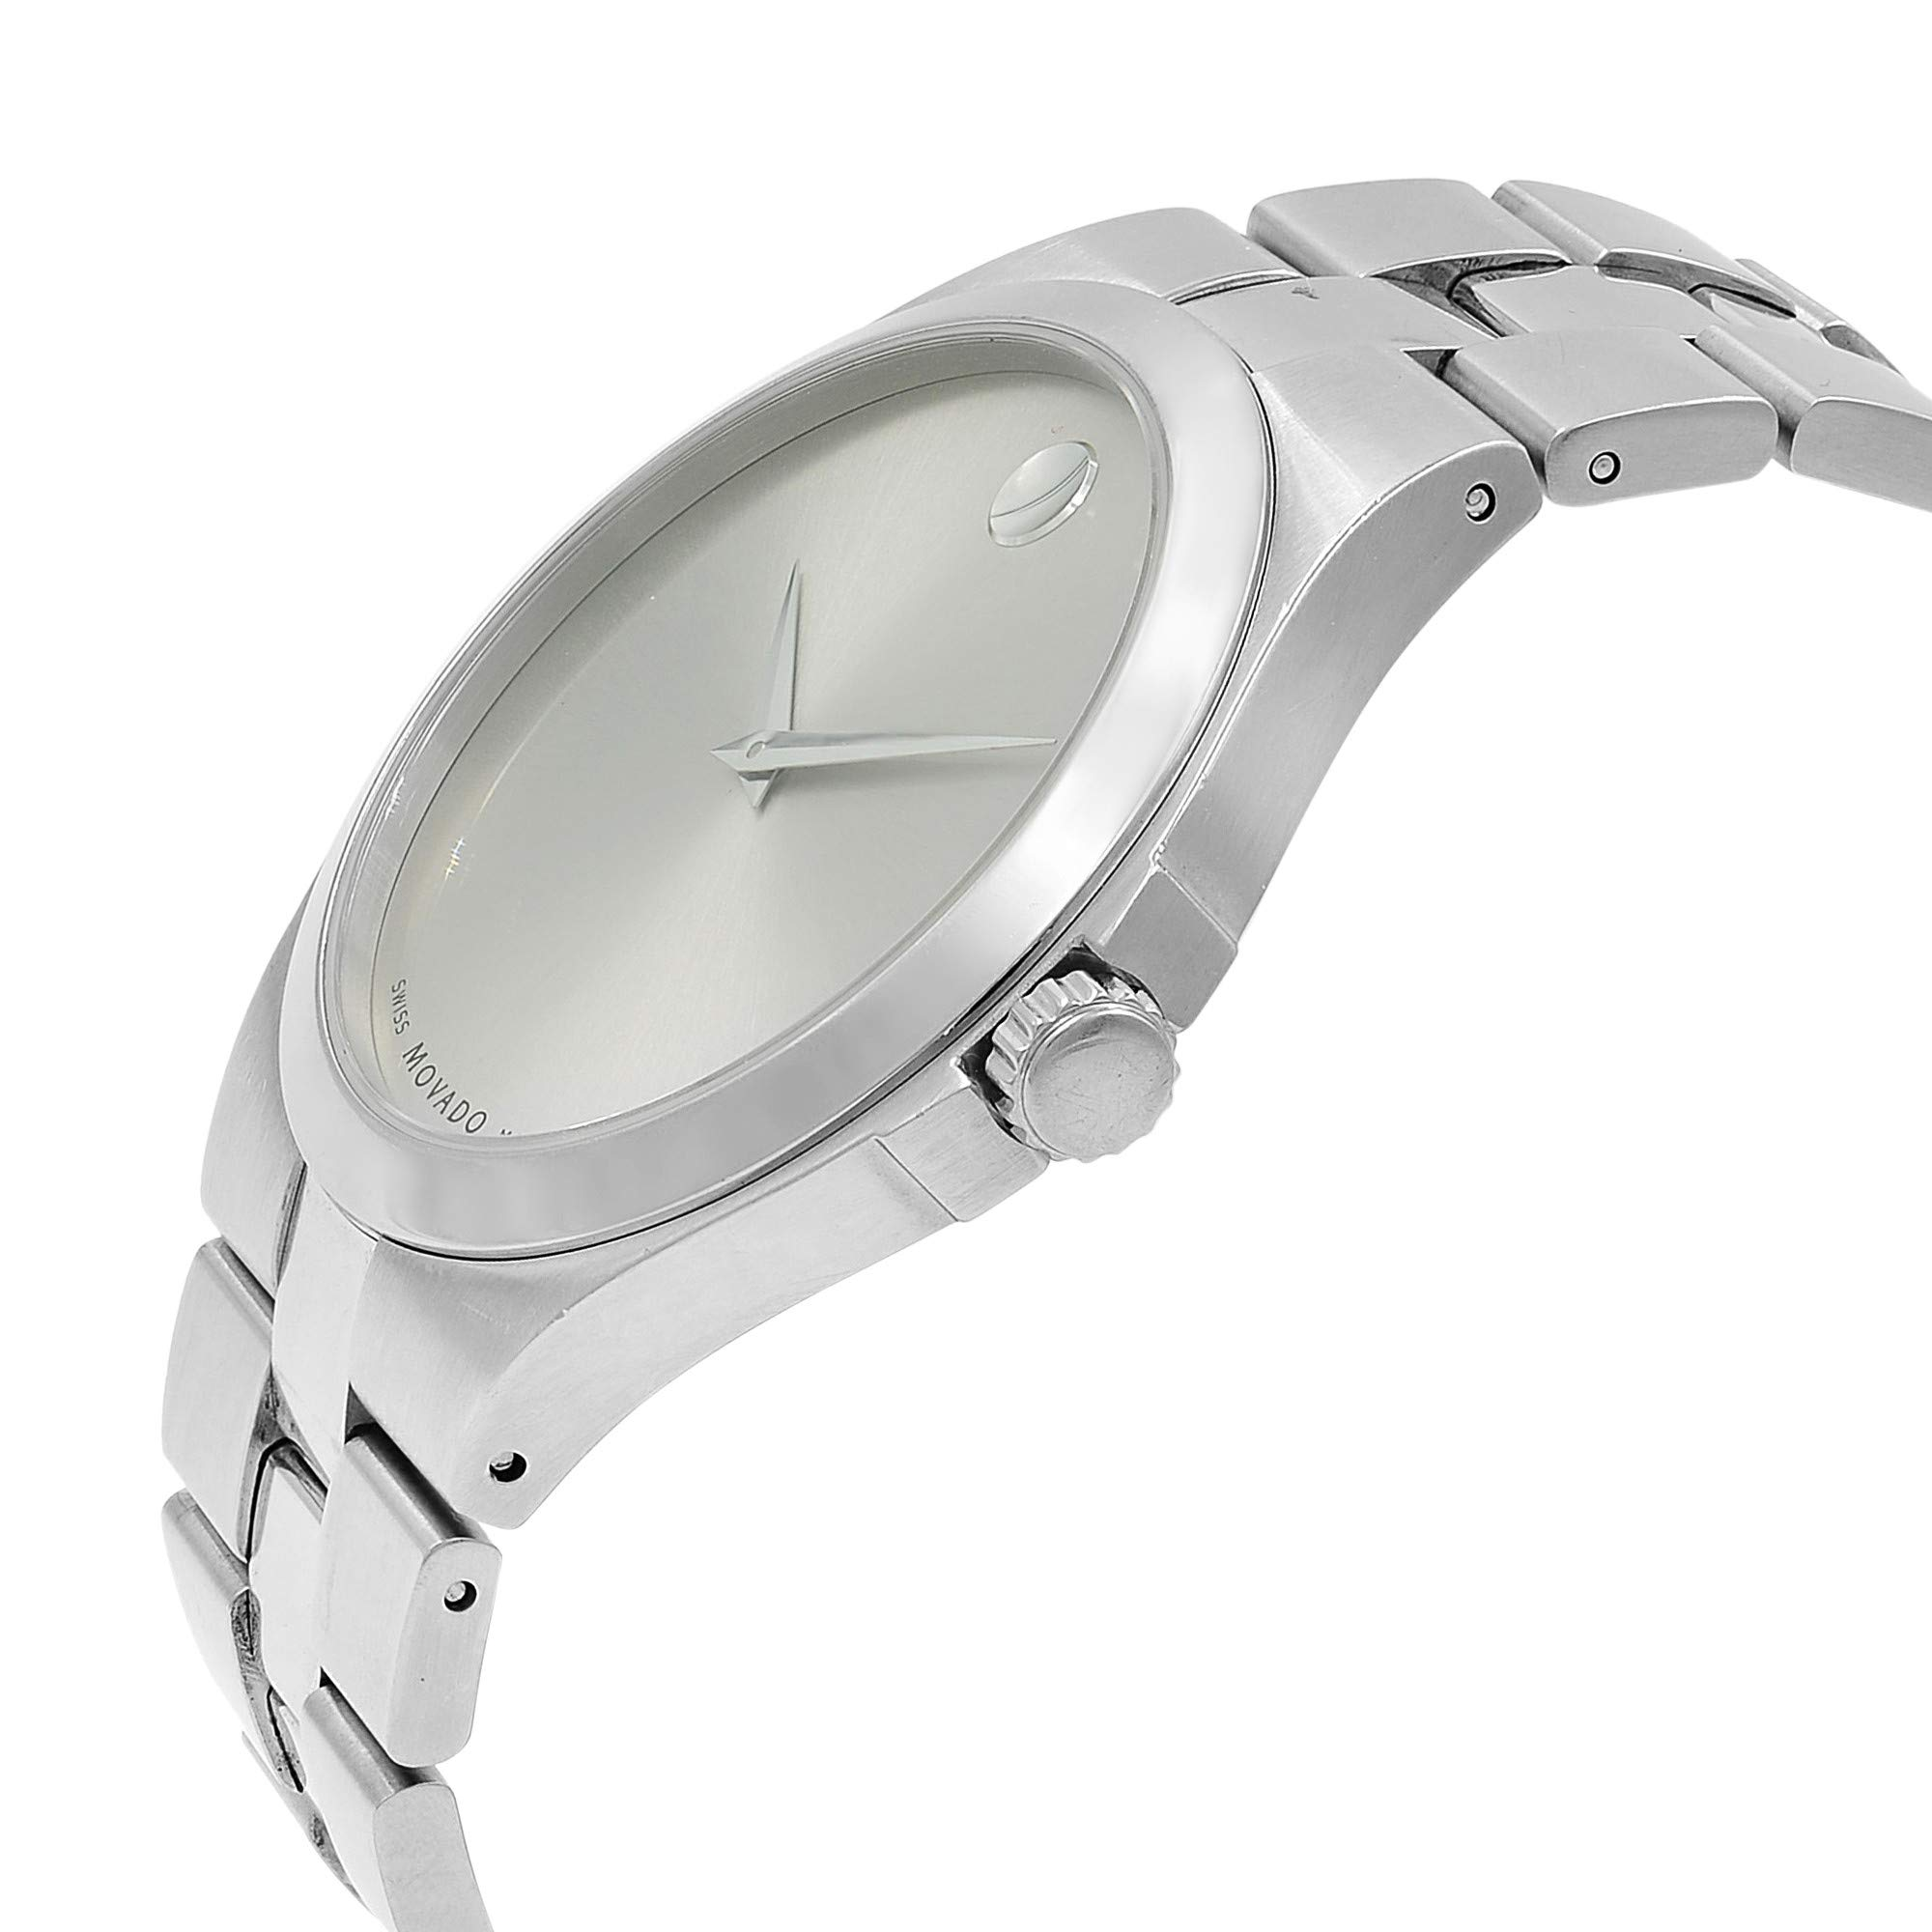 Movado Serio Quartz Male Watch 0606556 (Certified Pre-Owned) by Movado (Image #3)